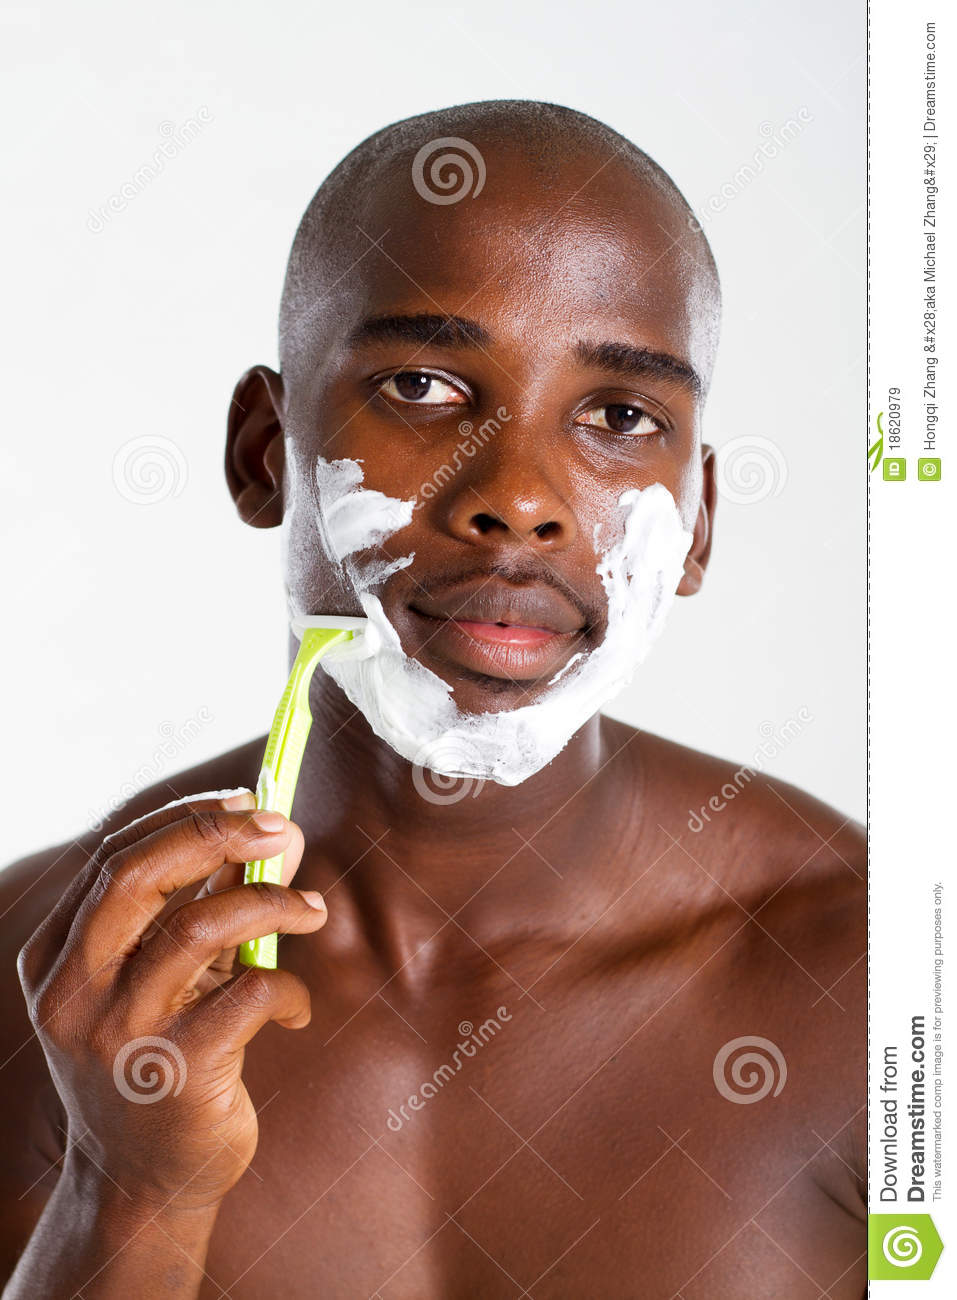 african american man shaving royalty free stock images image 18620979. Black Bedroom Furniture Sets. Home Design Ideas